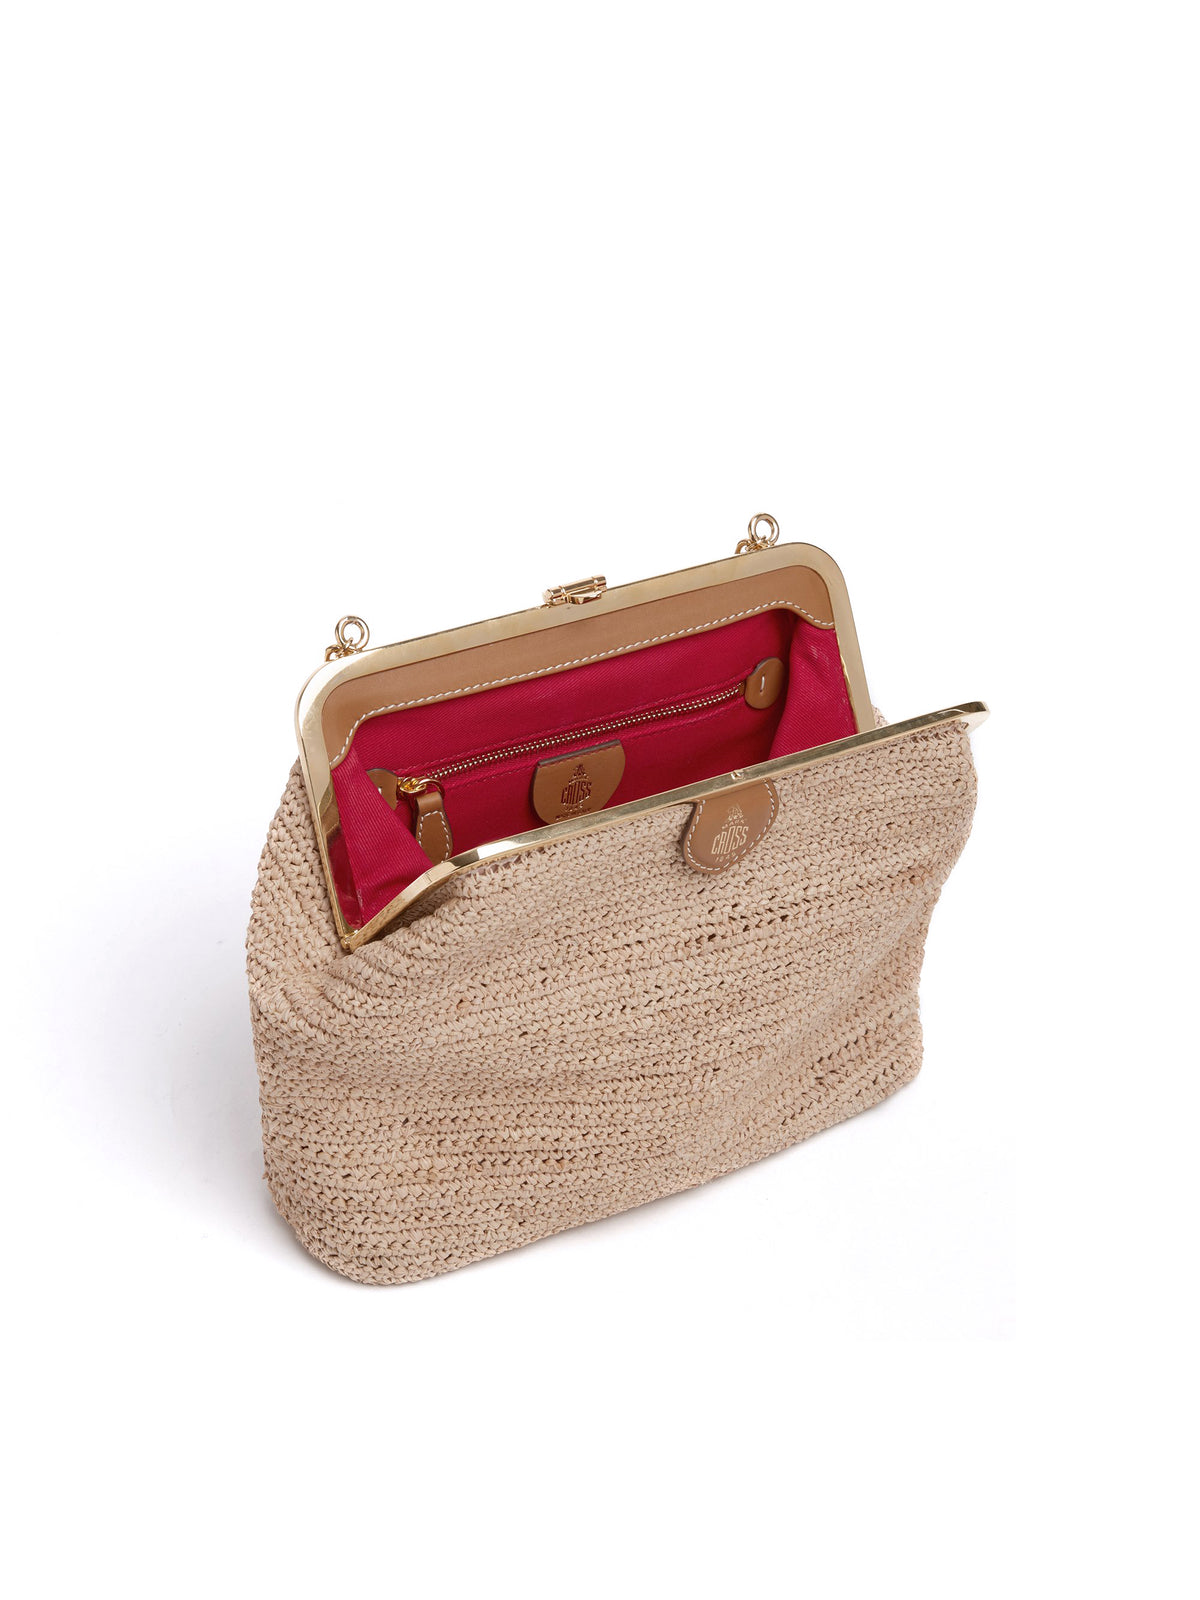 Mark Cross Susanna Raffia Pouch Bag Soft Calf Luggage / Natural Raffia Interior